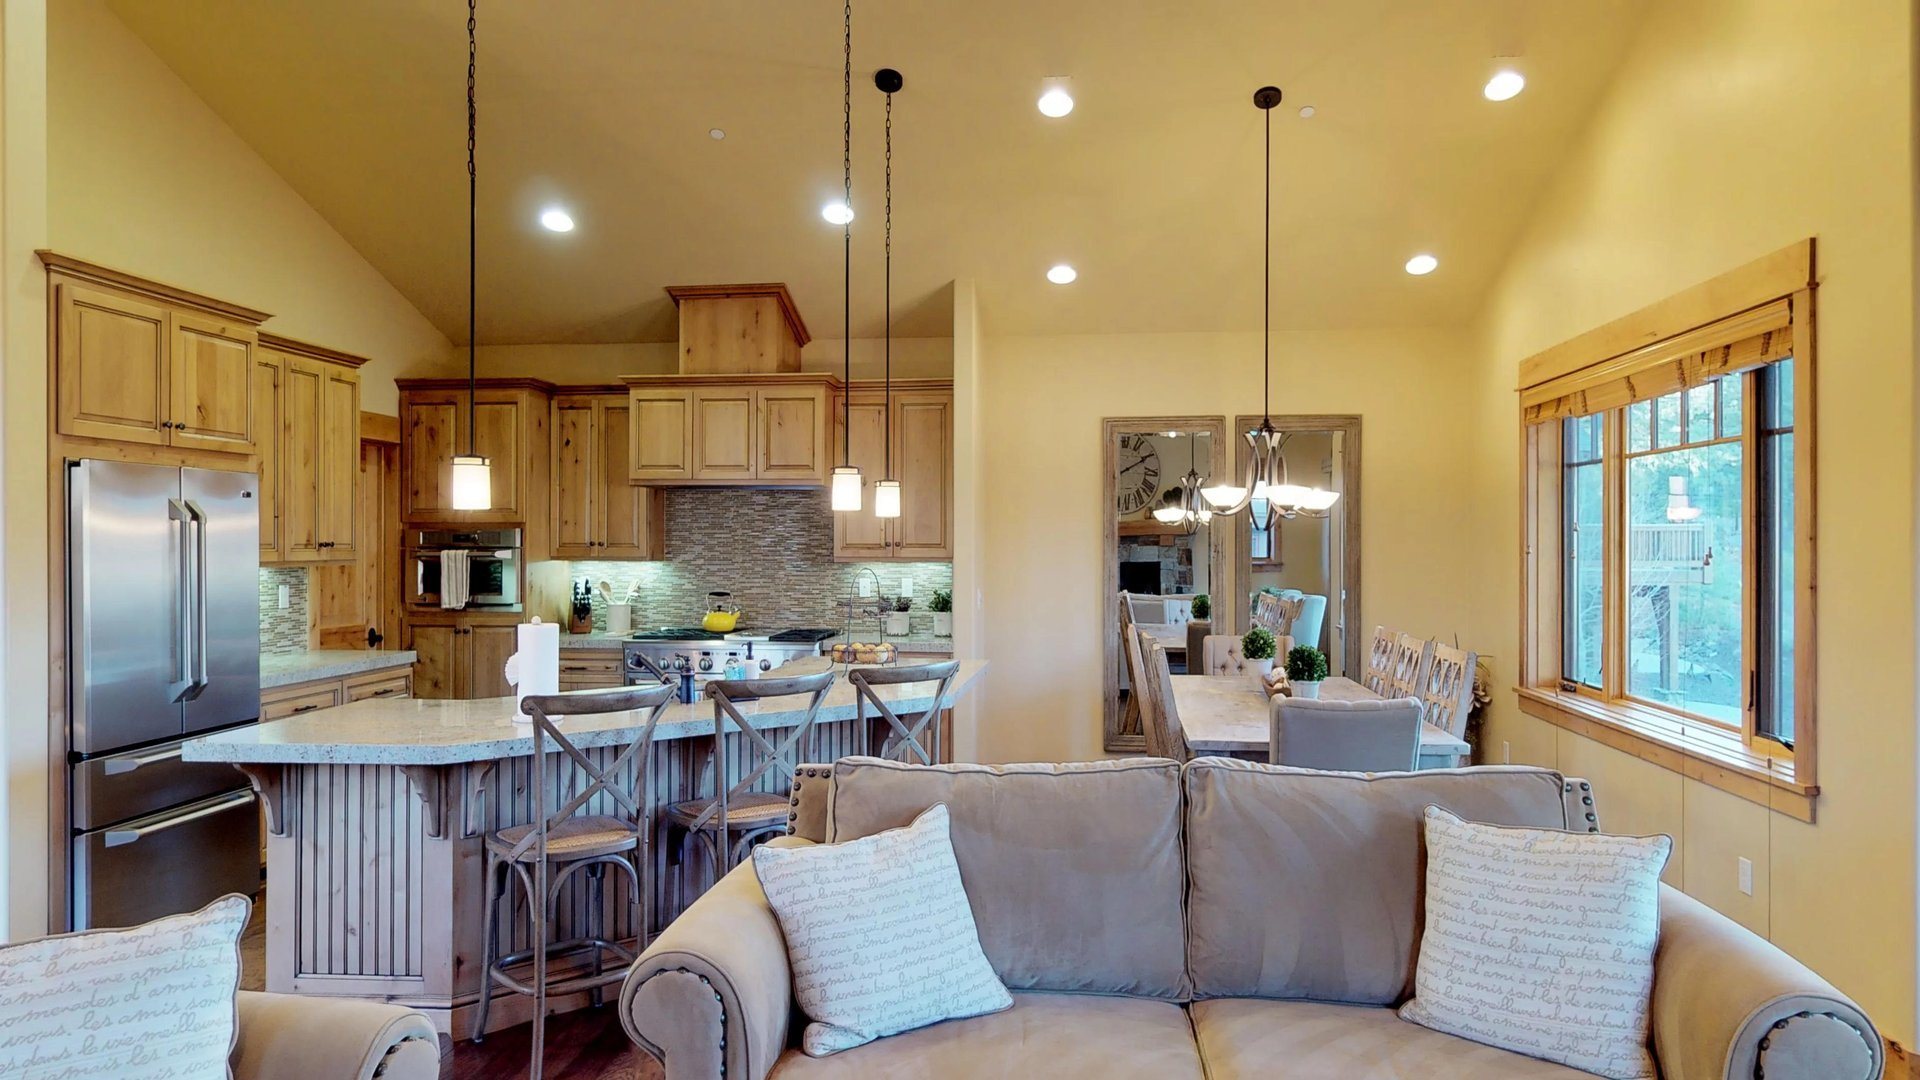 Large Kitchen Opens Up to Living Space in Vacation Rental in Truckee CA.